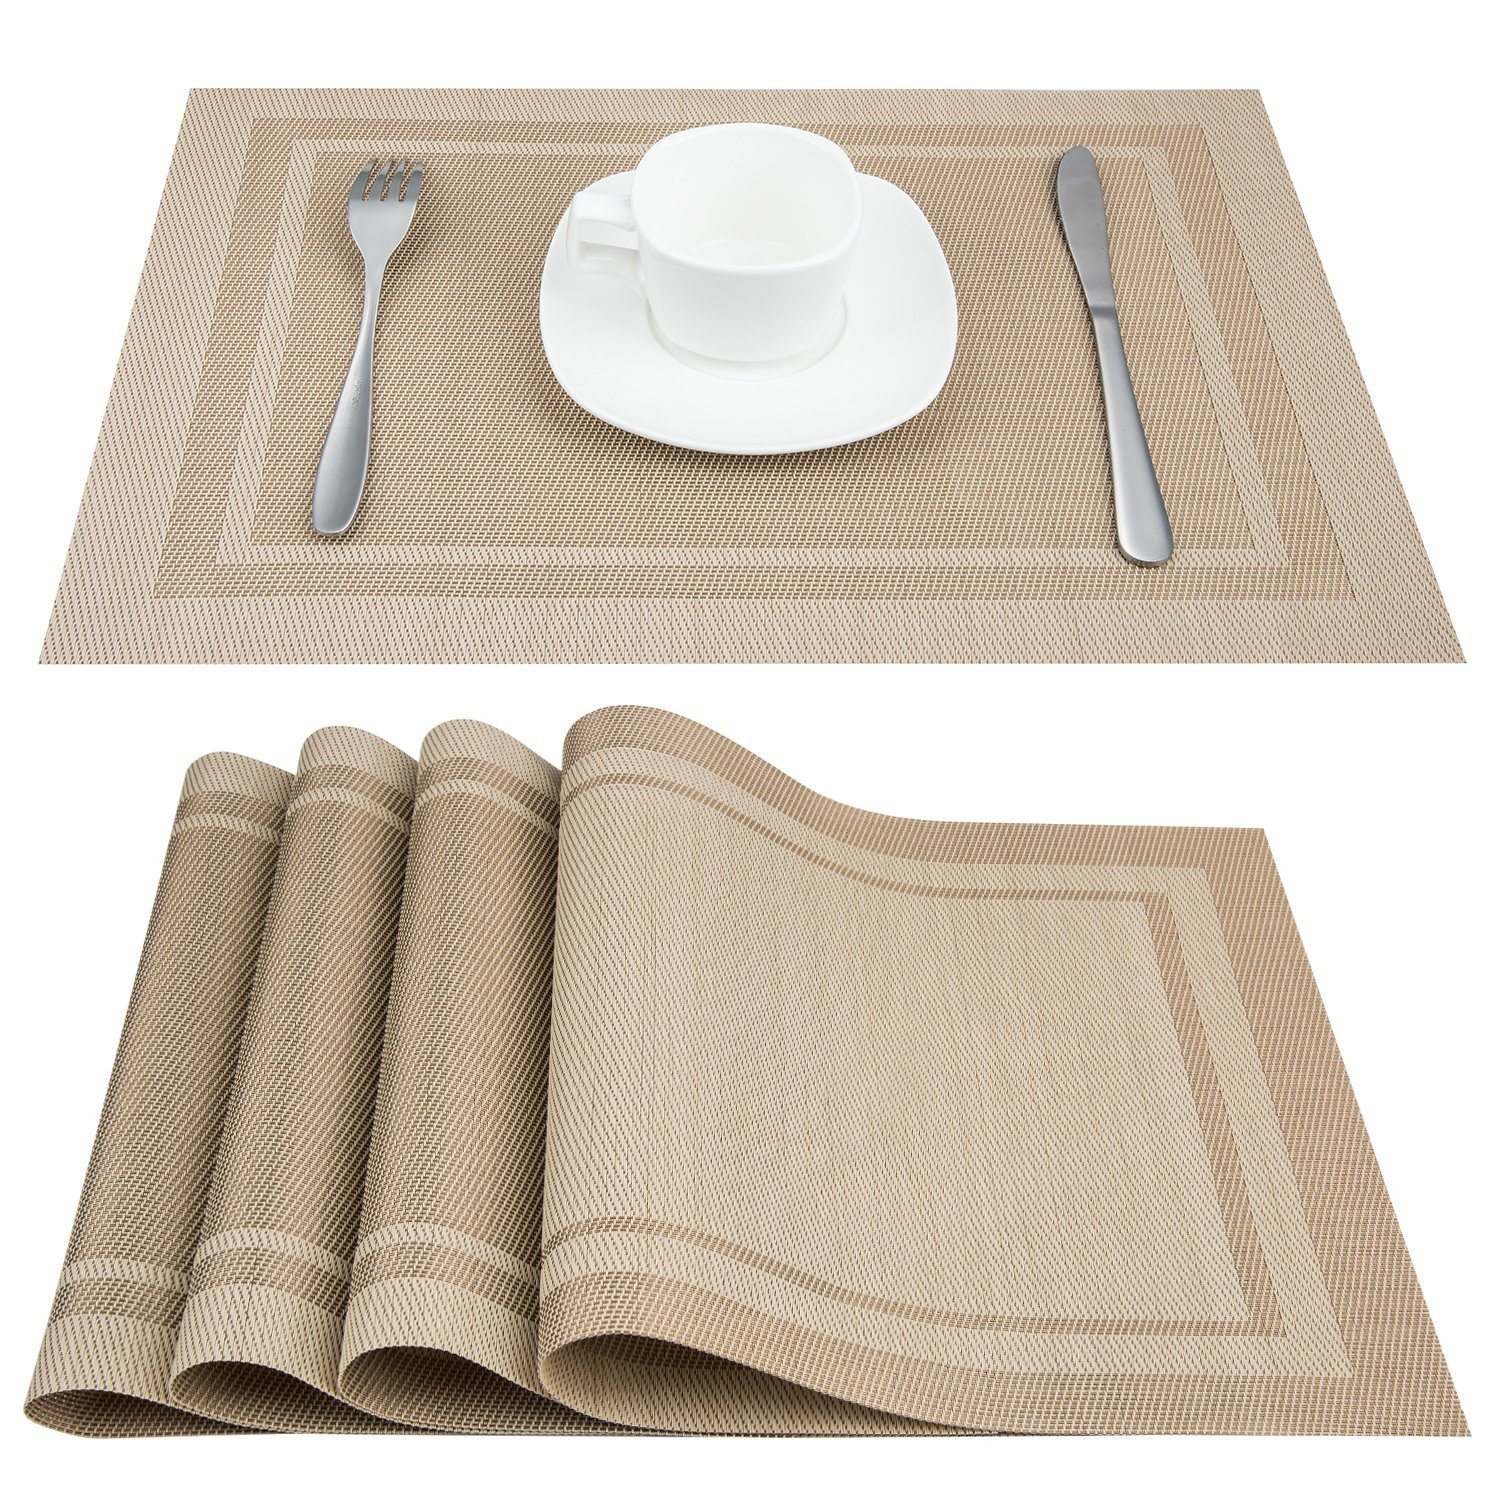 Artand Placemats, Heat-resistant Placemats Stain Resistant Anti-skid Washable PVC Table Mats Woven Vinyl Placemats, Set of 4 (Beige) by Artand